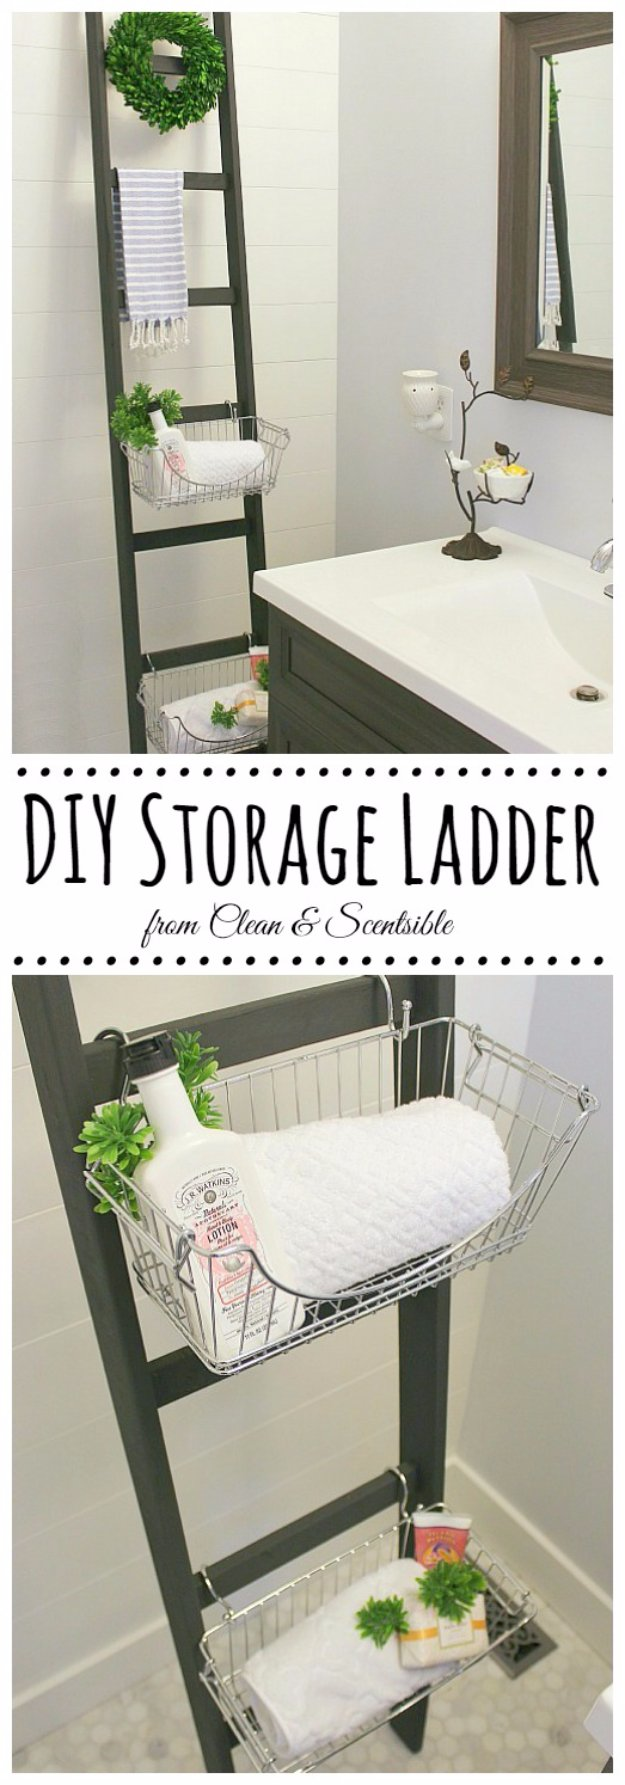 31 brilliant diy decor ideas for your bathroom page 2 of